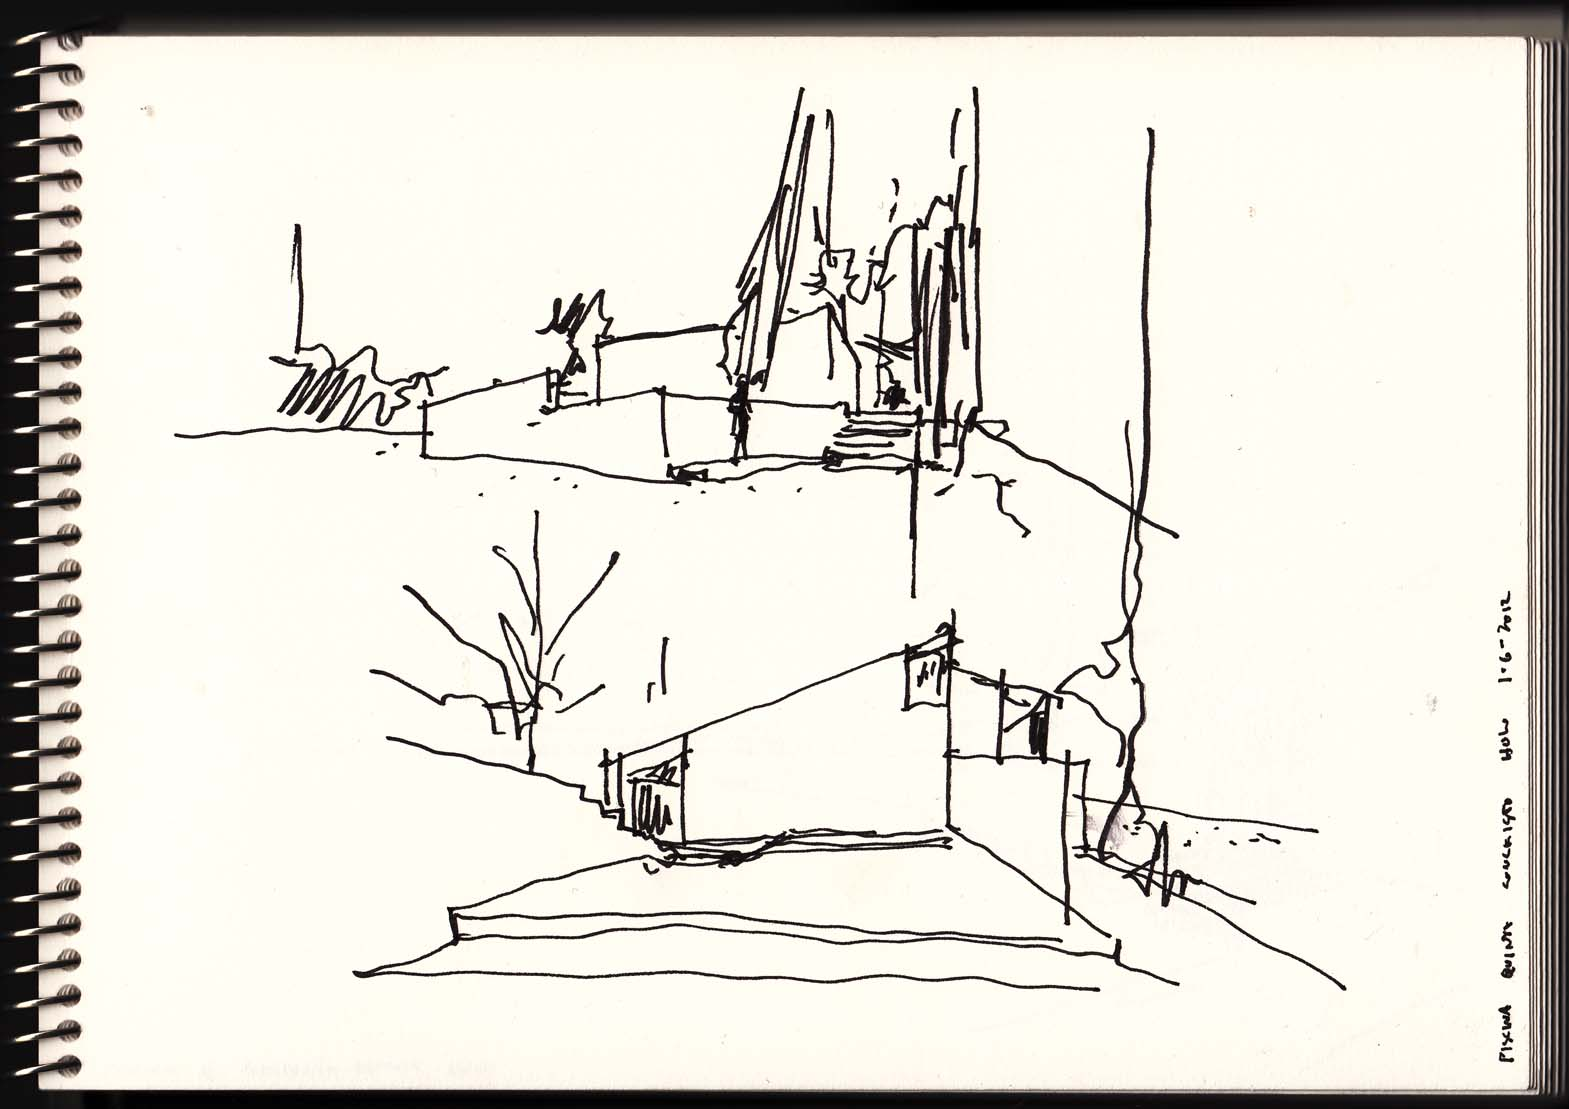 Siza vieira a fresh drawing everyday page 2 for Swimming pool sketch